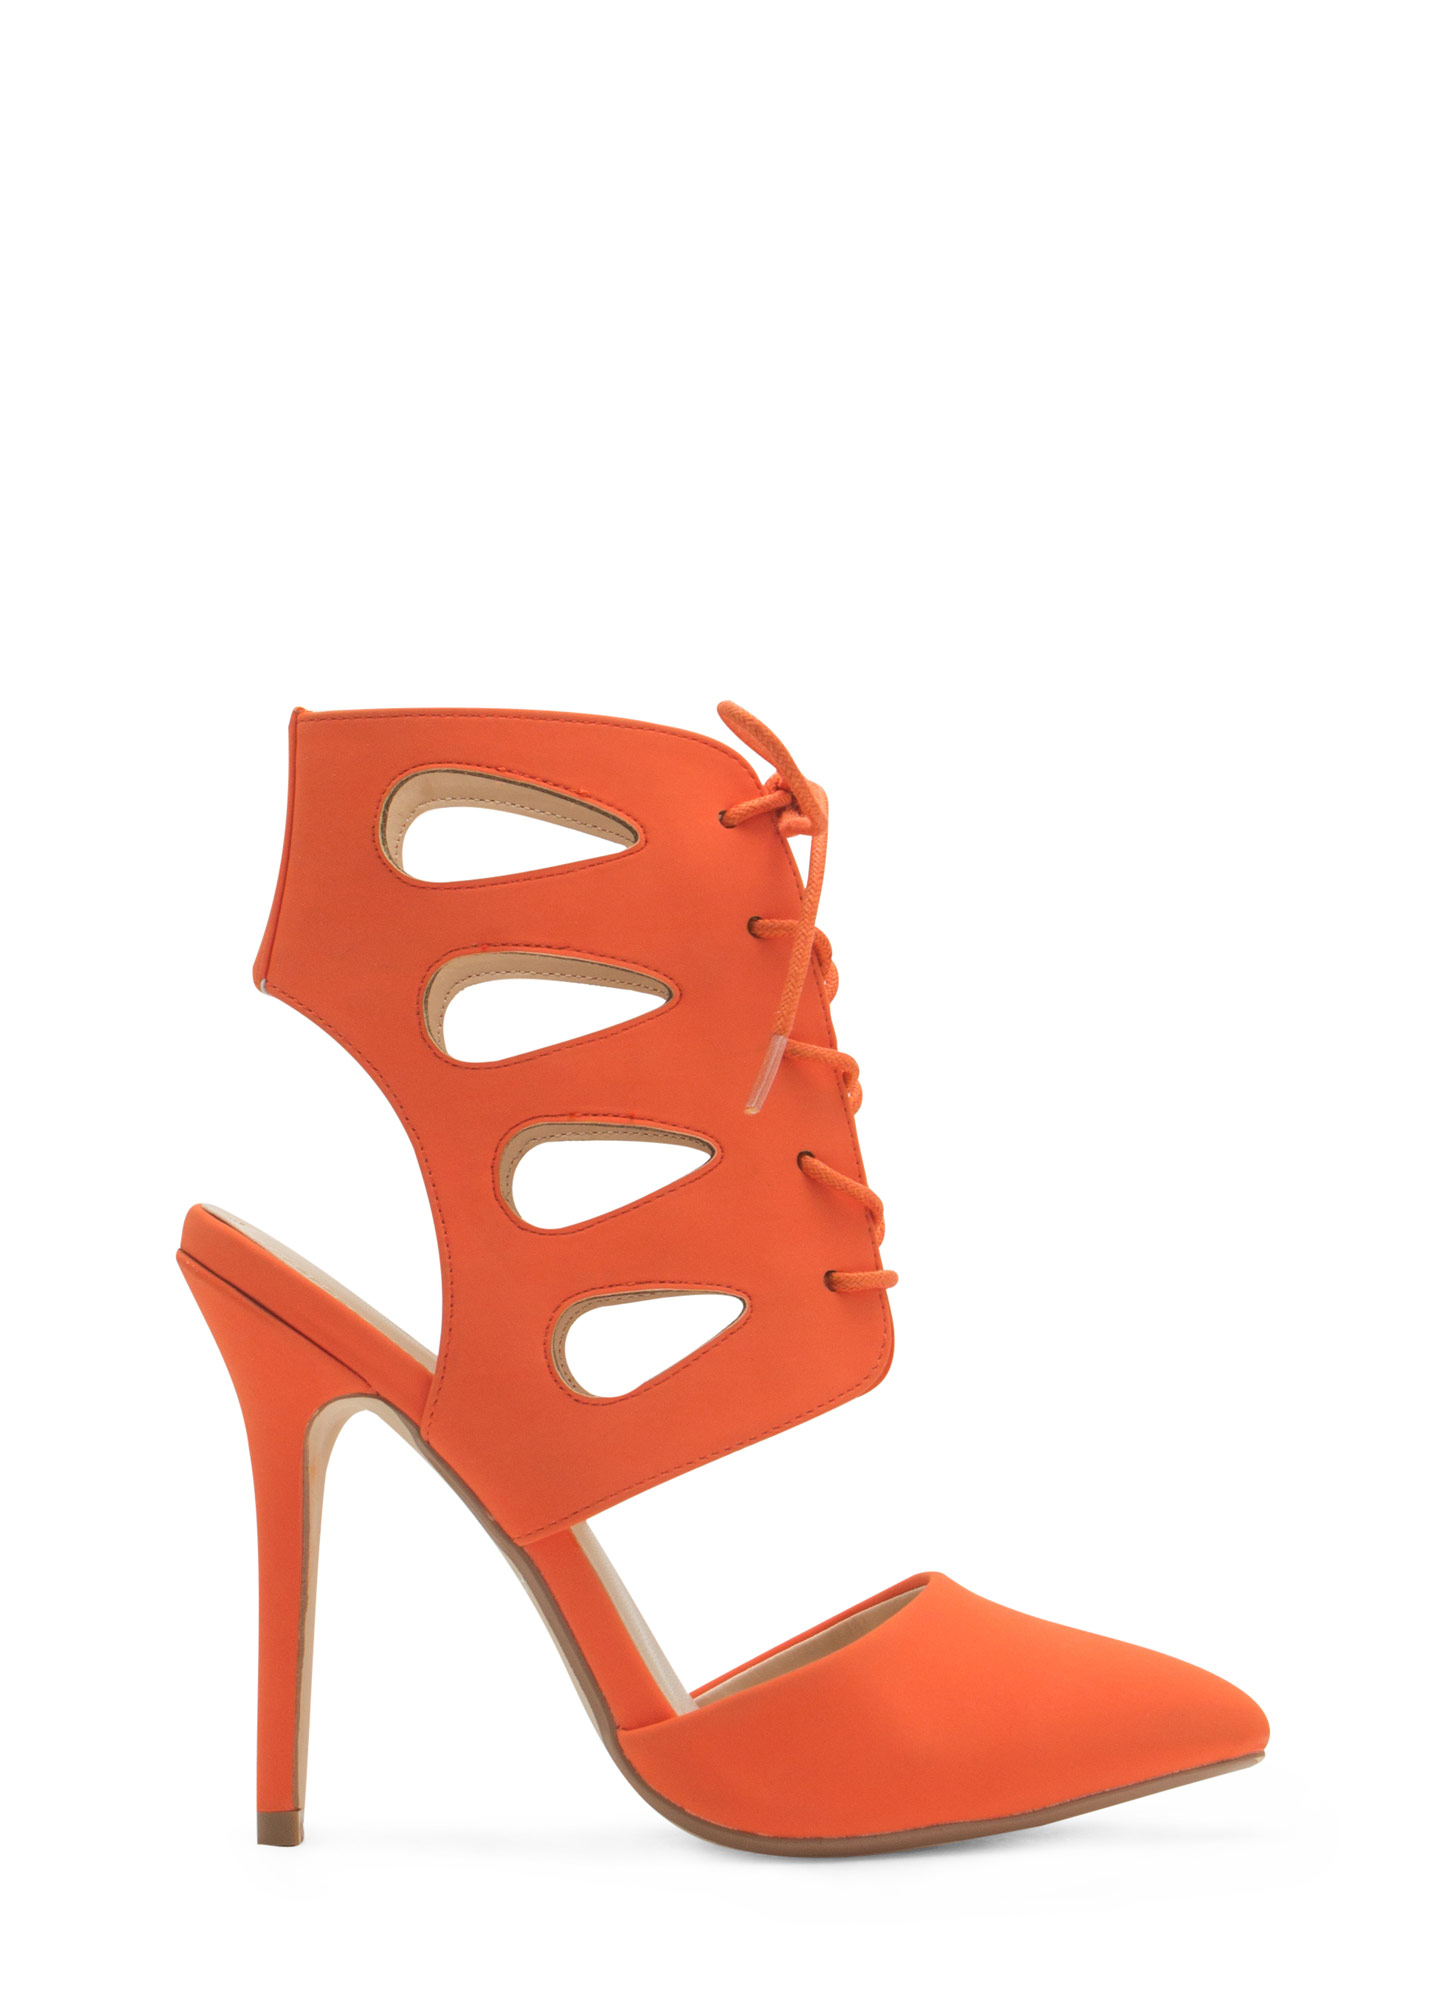 Teardrop Cut-Out Lace-Up Heels ORANGE